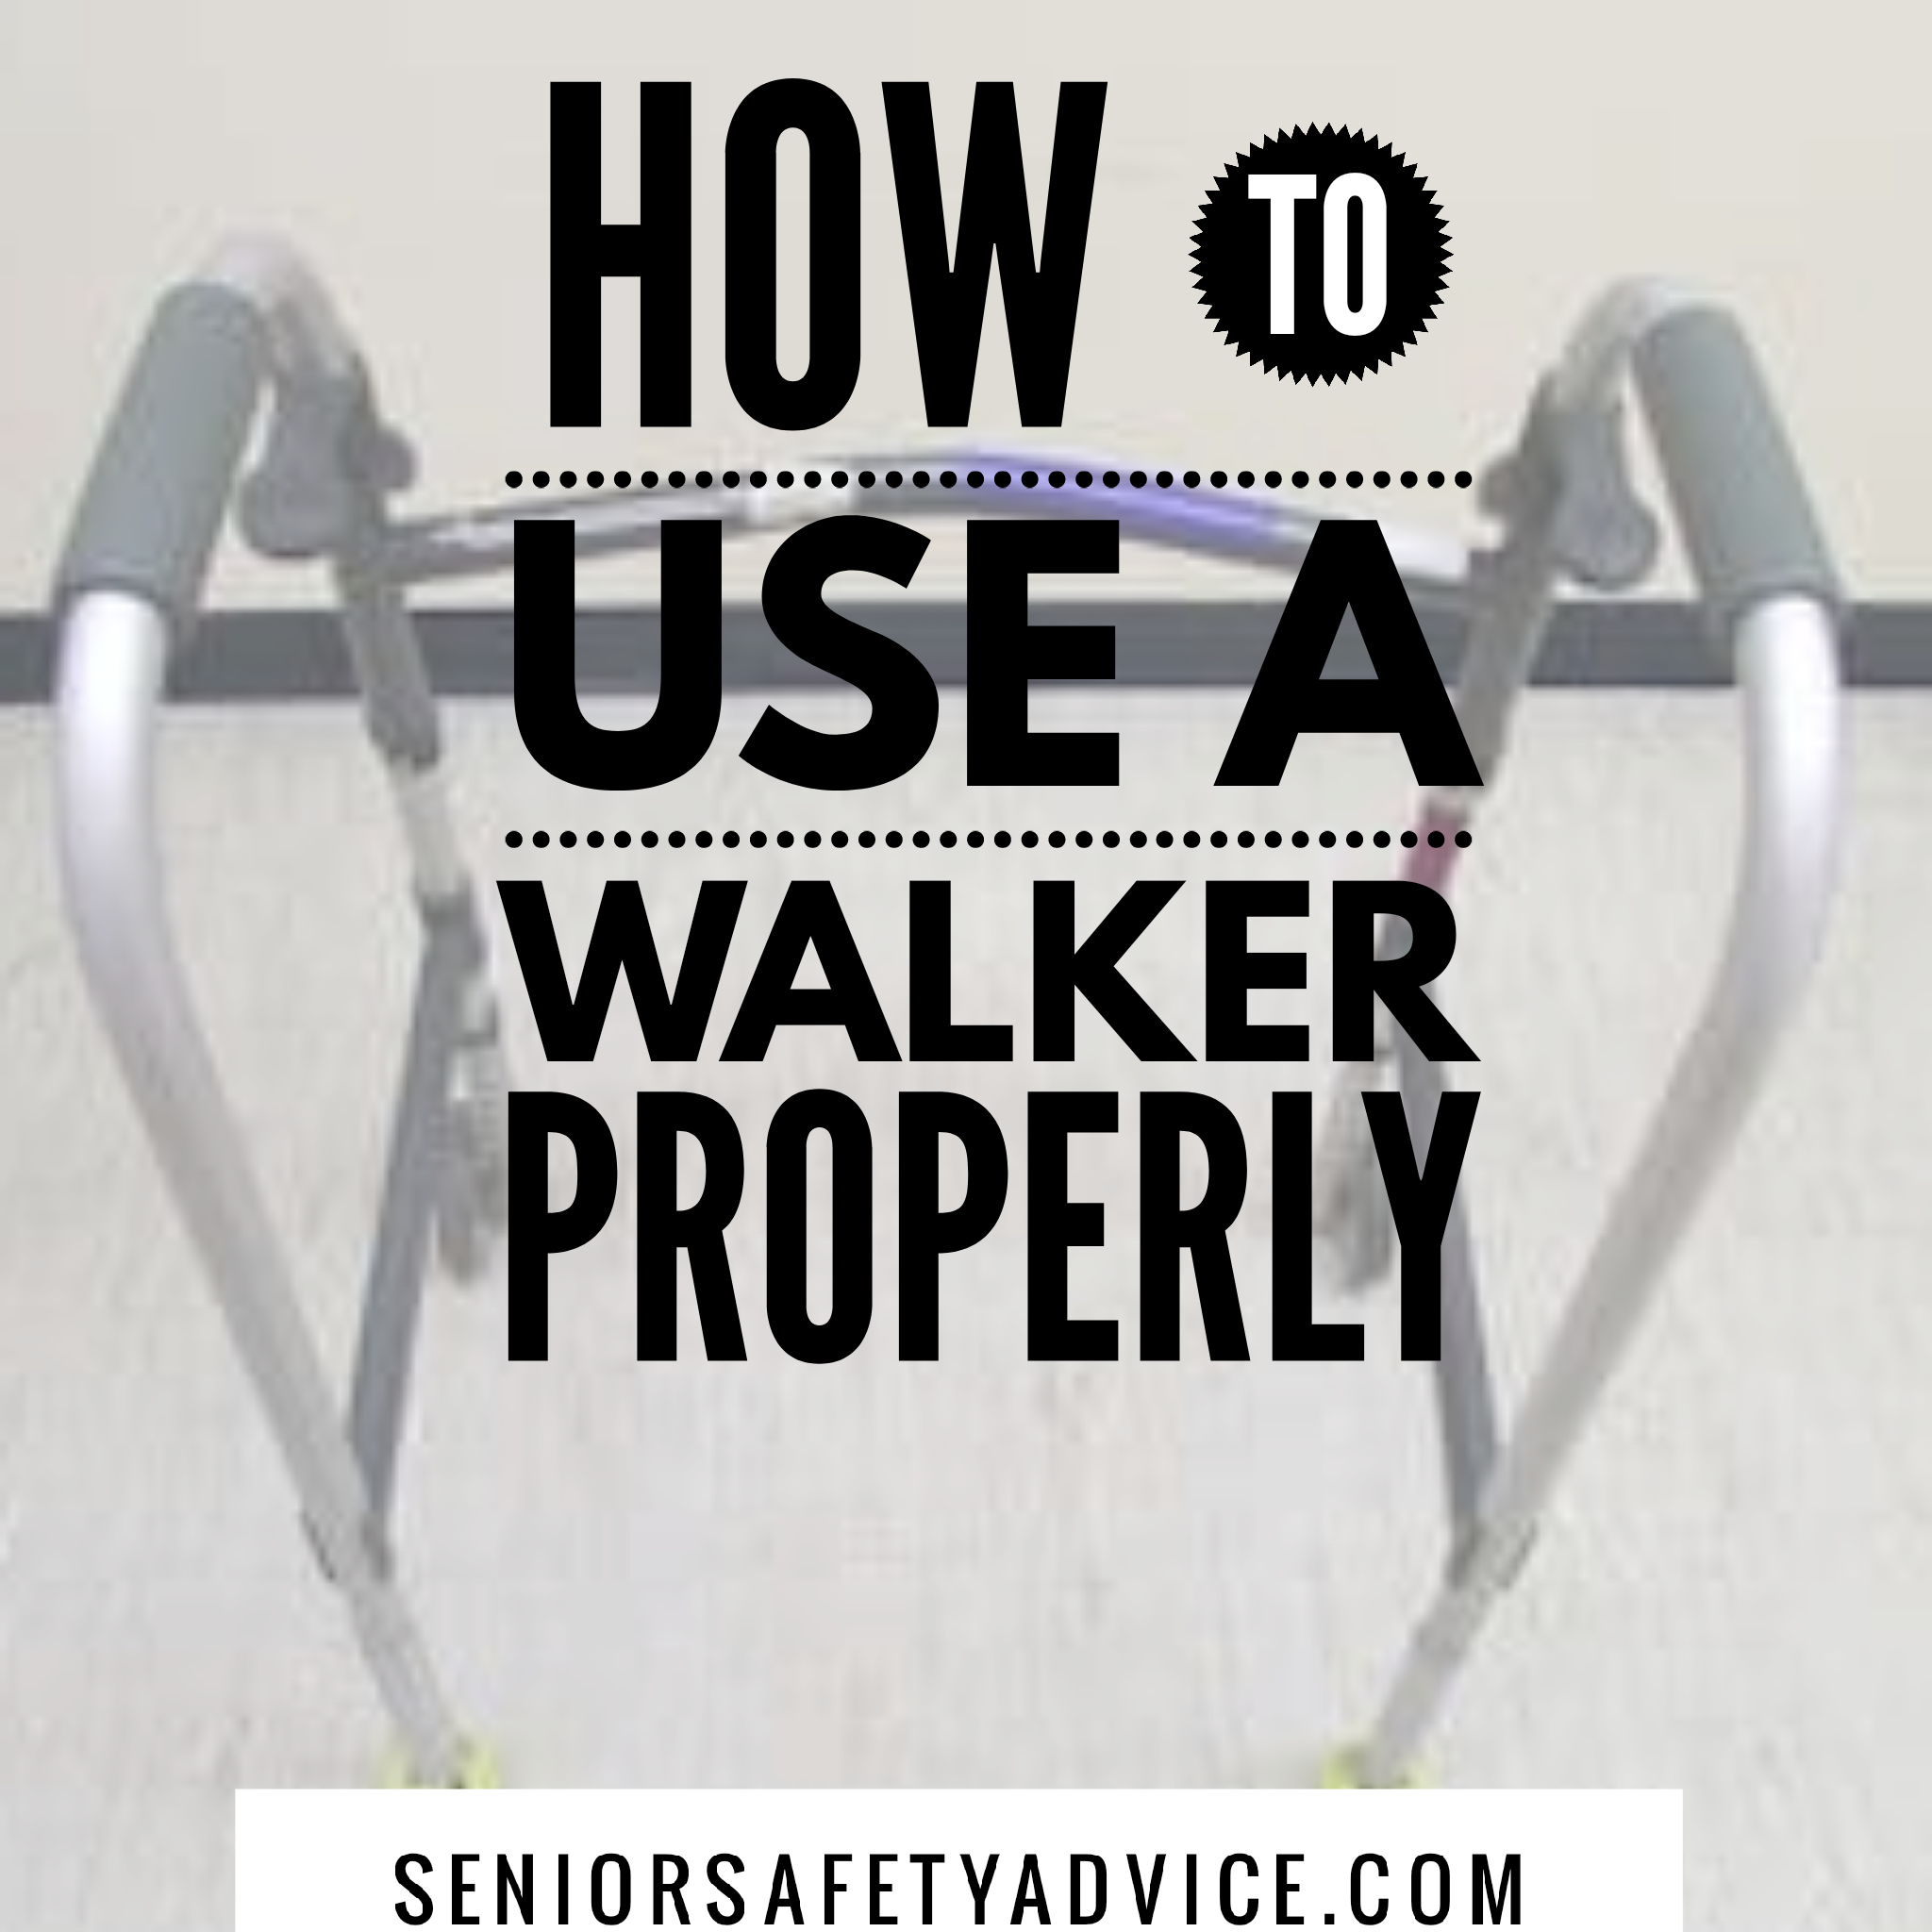 Know the basic safety rules for using a walker, place the